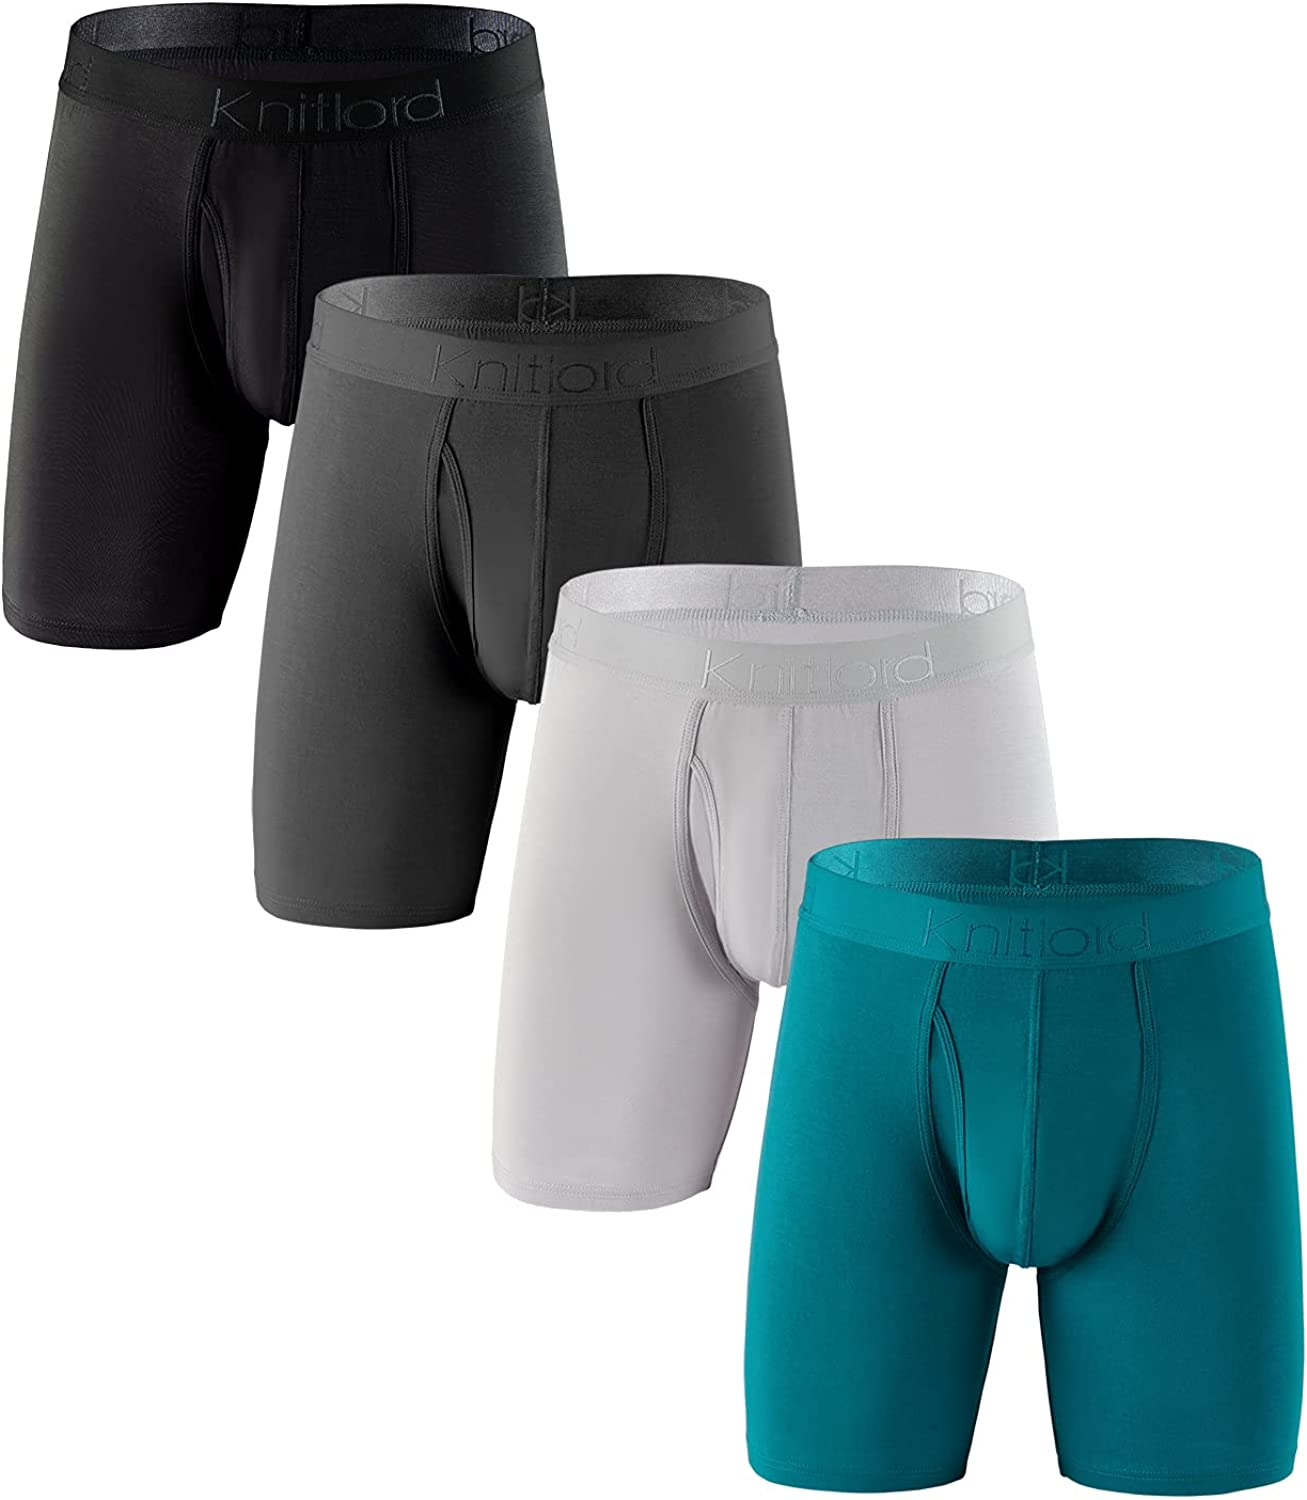 Men's Bamboo Underwear Soft Sales for sale Ranking integrated 1st place Lightweight Mid or Briefs Low Rise 3